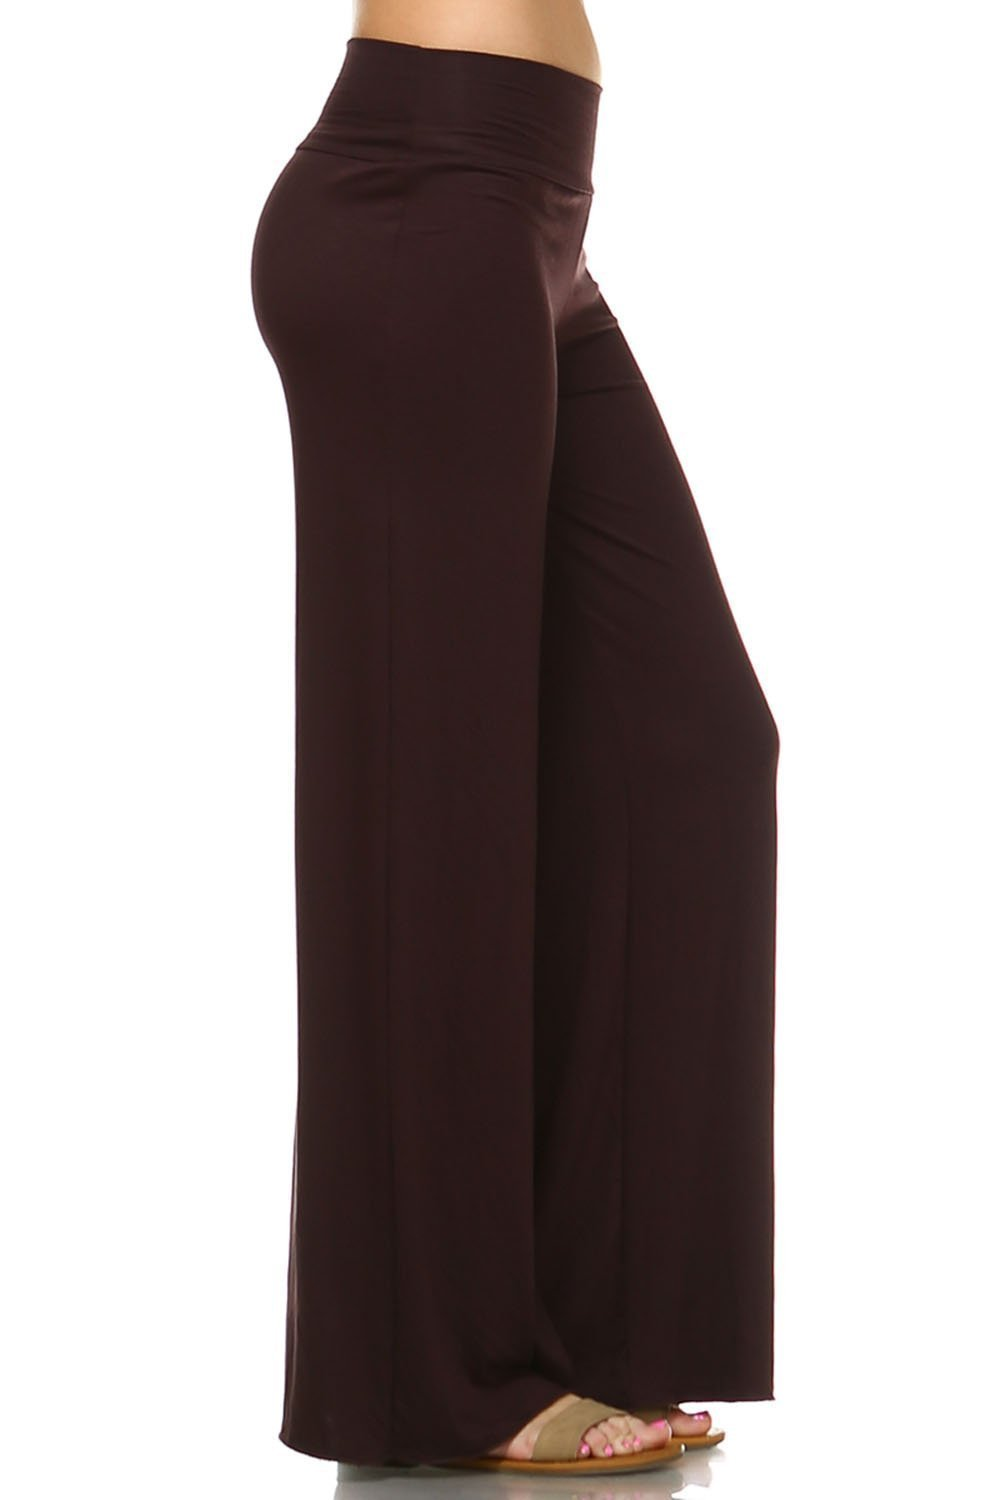 Simplicitie Women's Casual Wide Leg High Waist Bohemian Palazzo Pants - Brown, Small - Made in USA